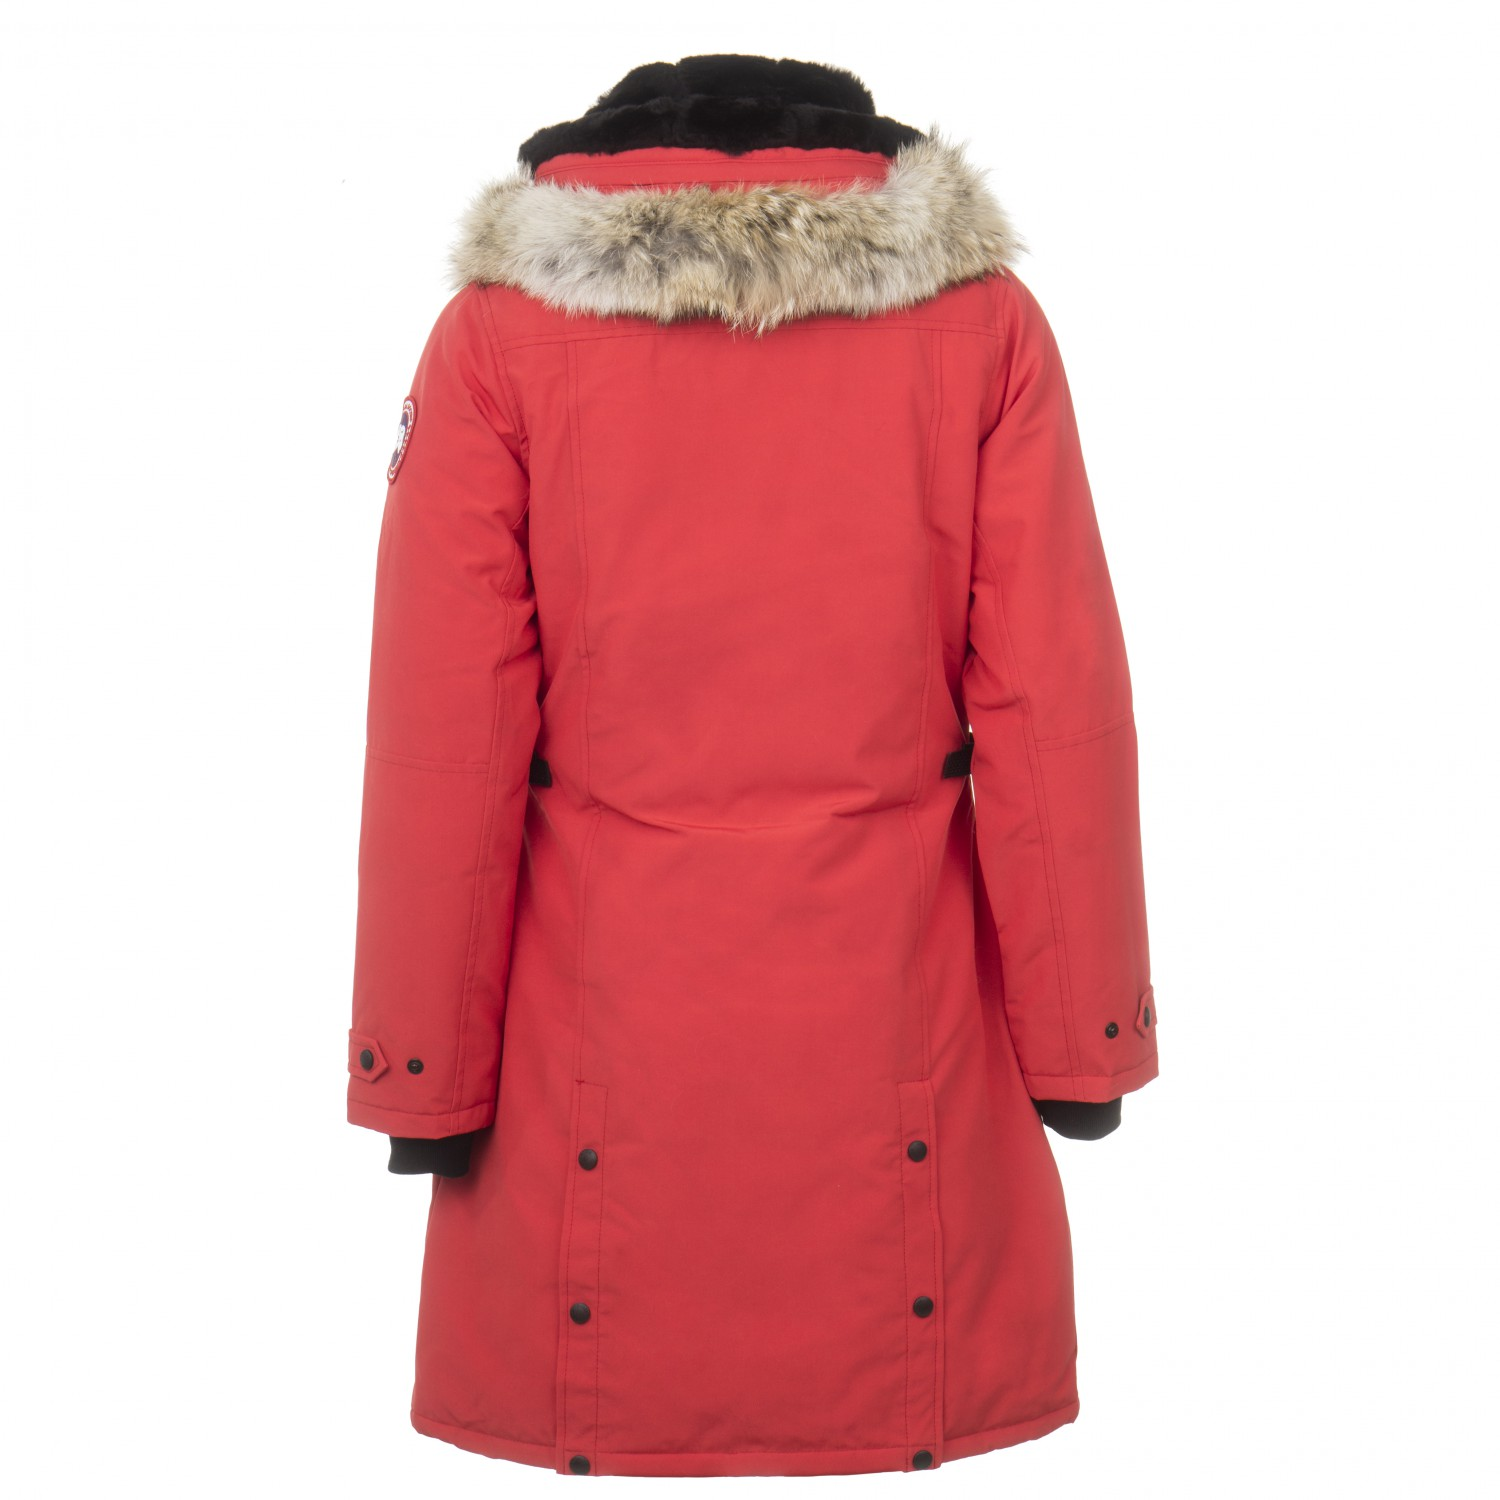 5c76fe8c5b9 ... Canada Goose - Women s Kensington Parka - Winter jacket ...